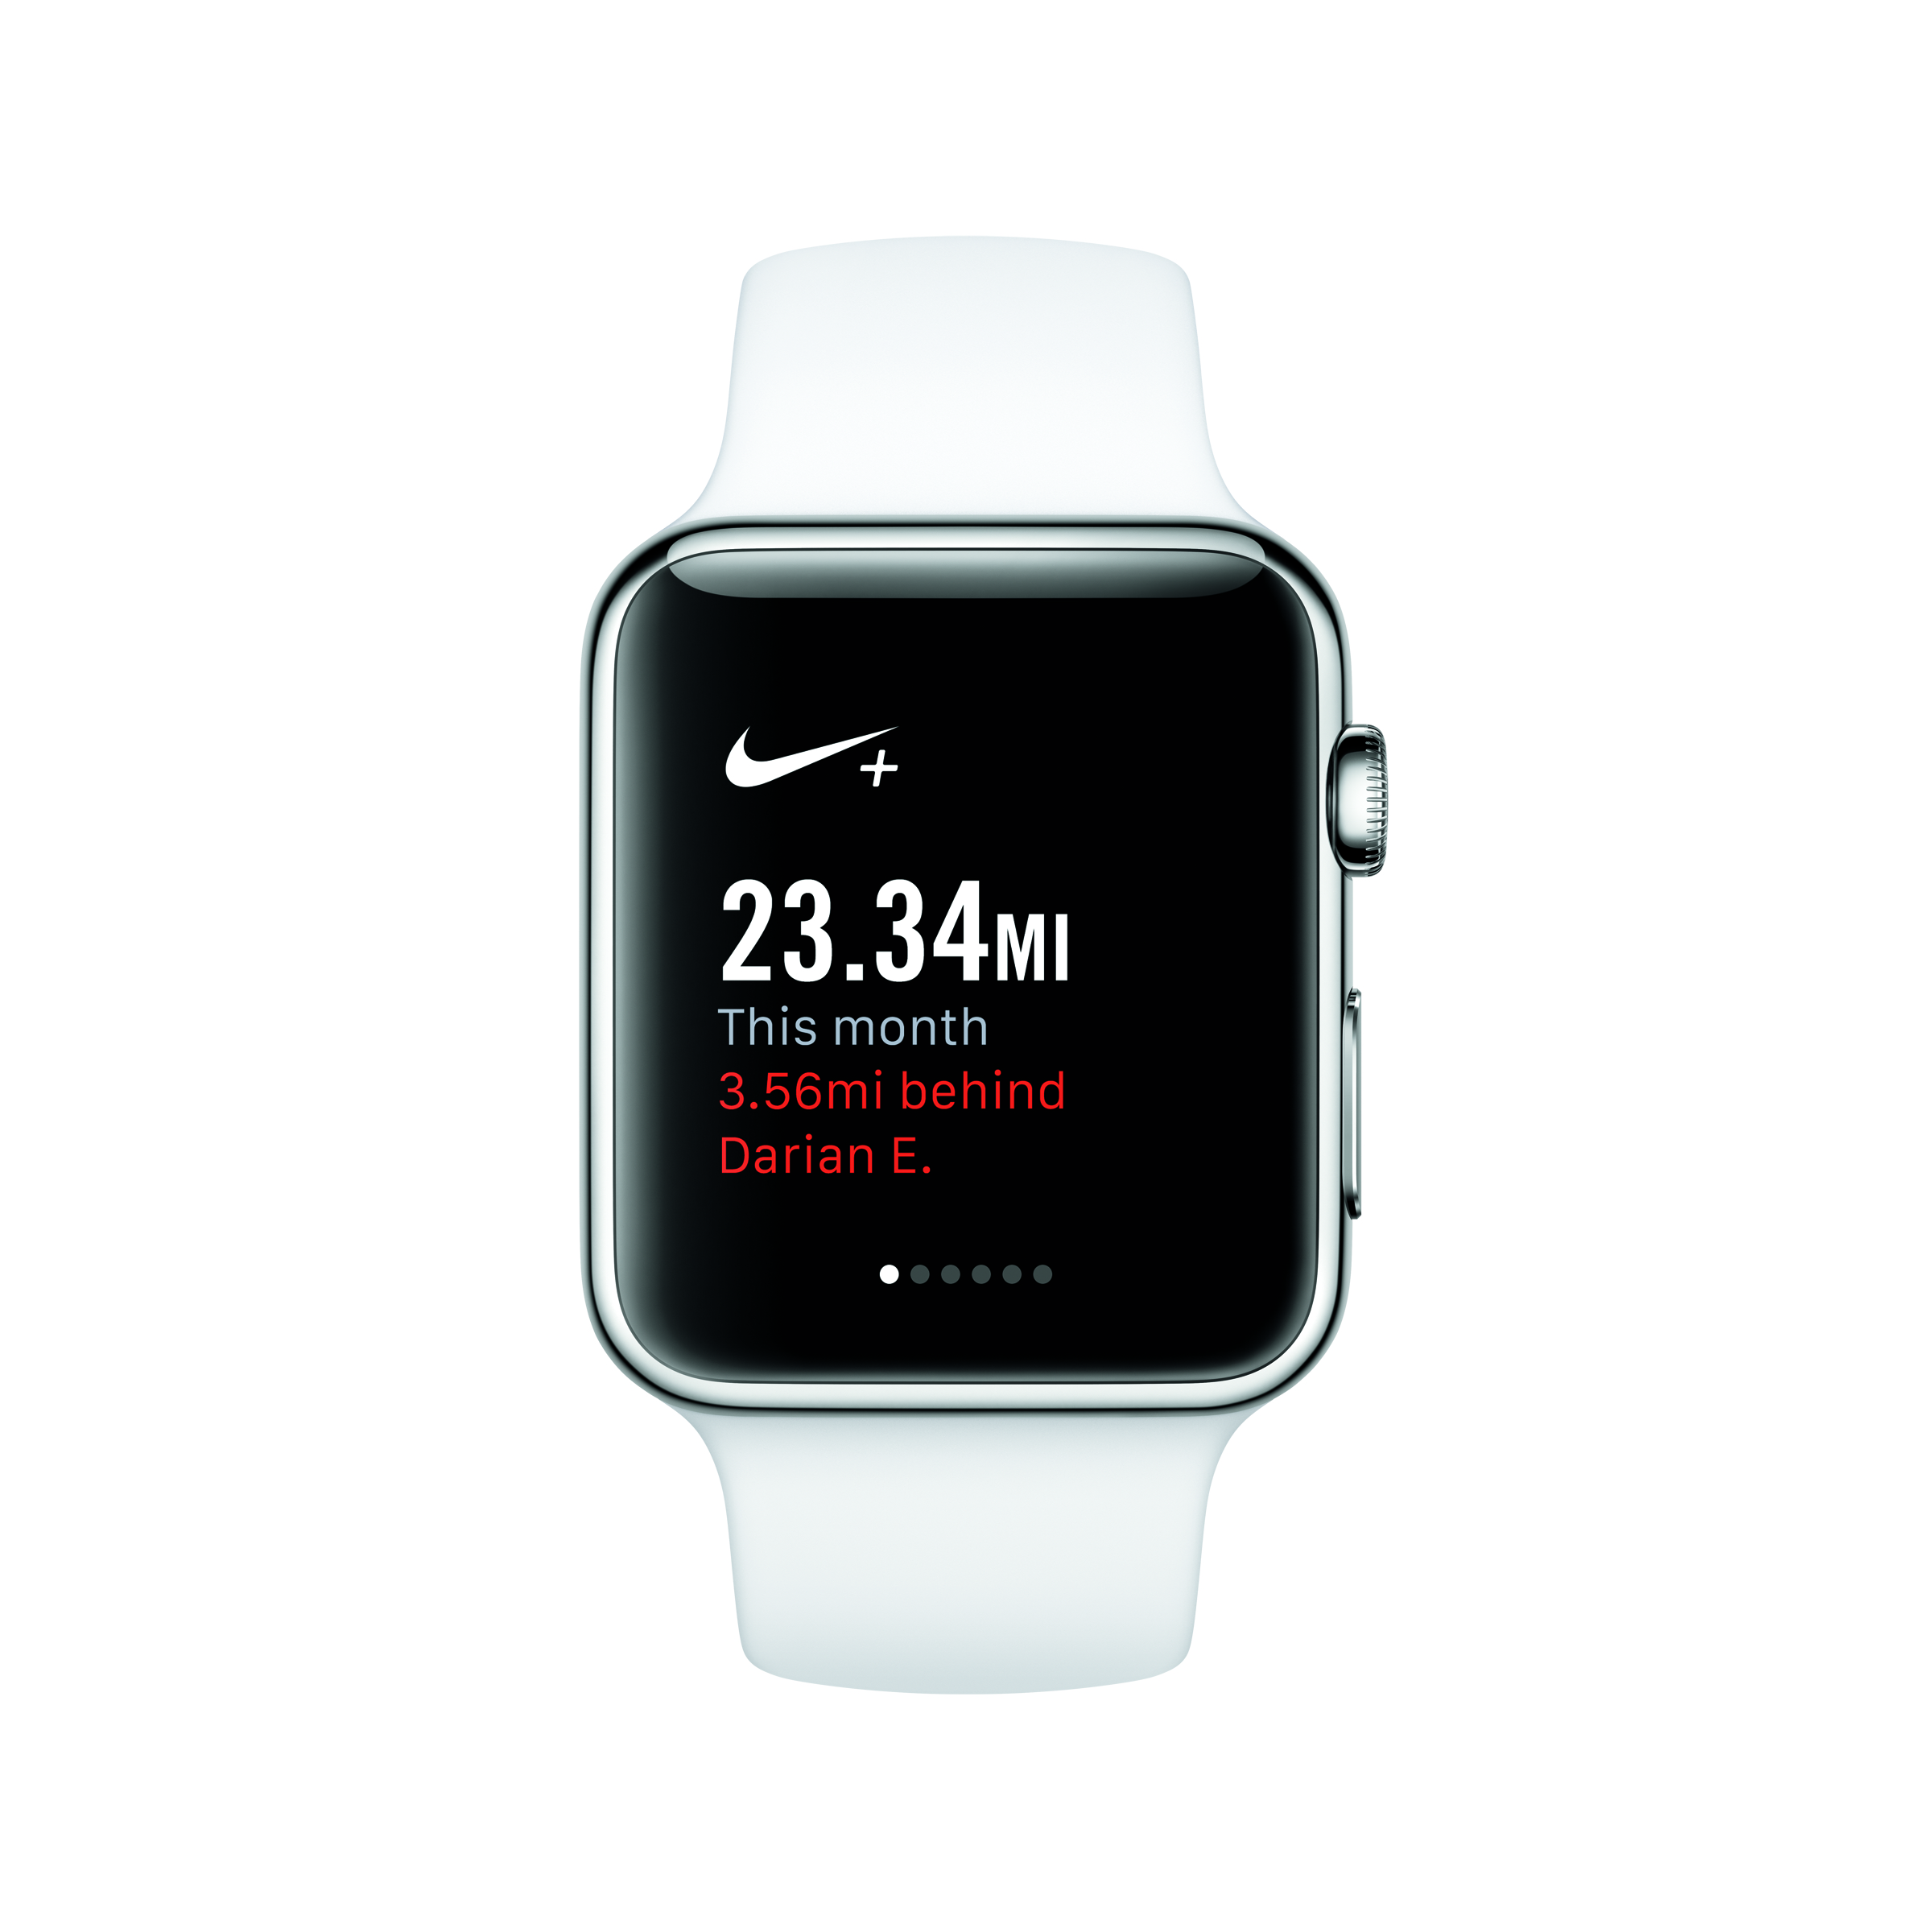 nike running app launches on apple watch nike news